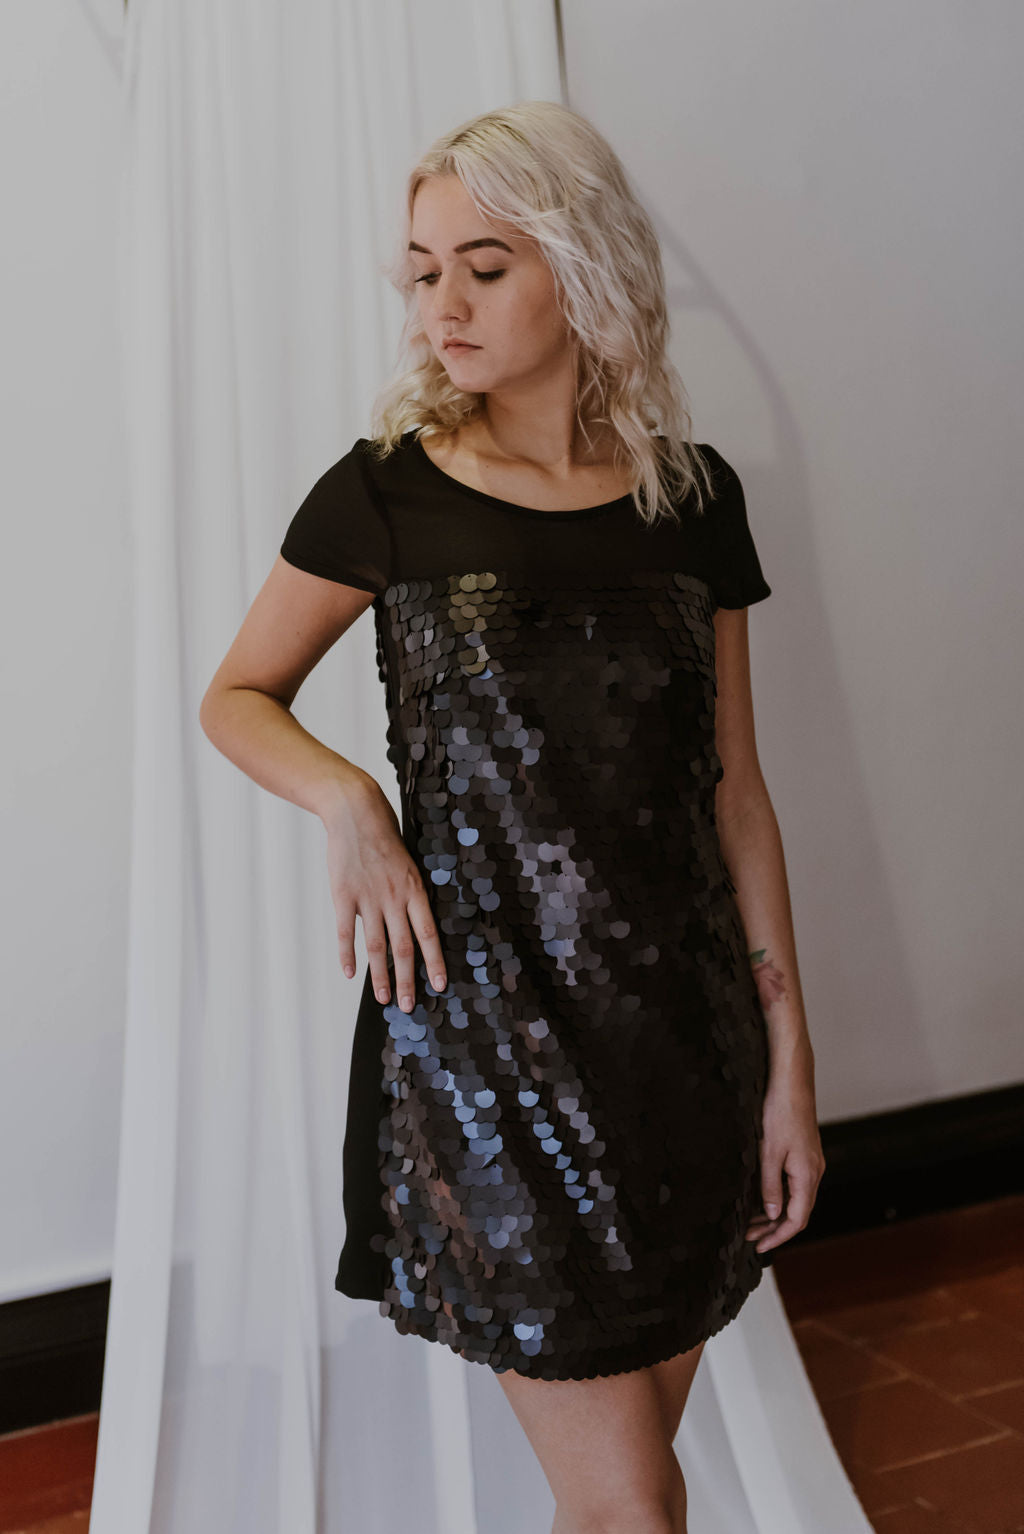 The T-Shirt Sequin Cocktail Dress